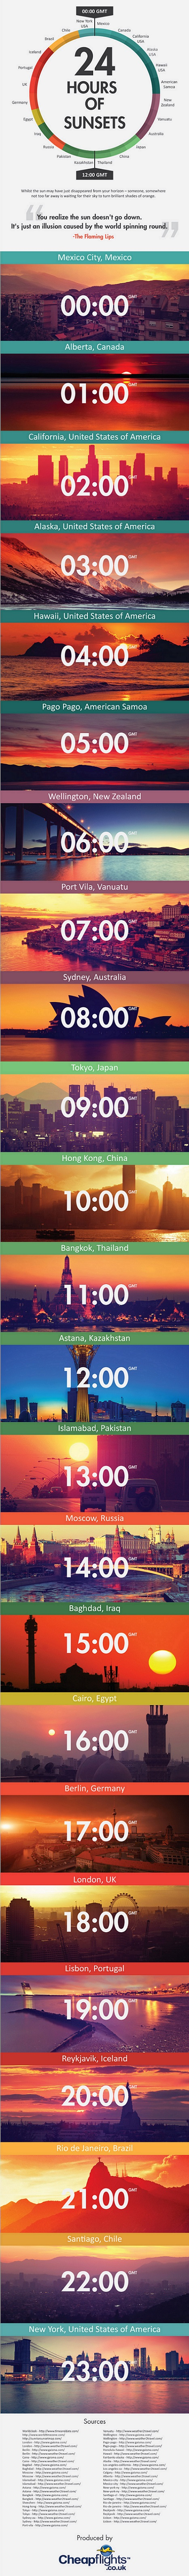 infographic-24-hours-of-sunsets_527a2e86b0a72